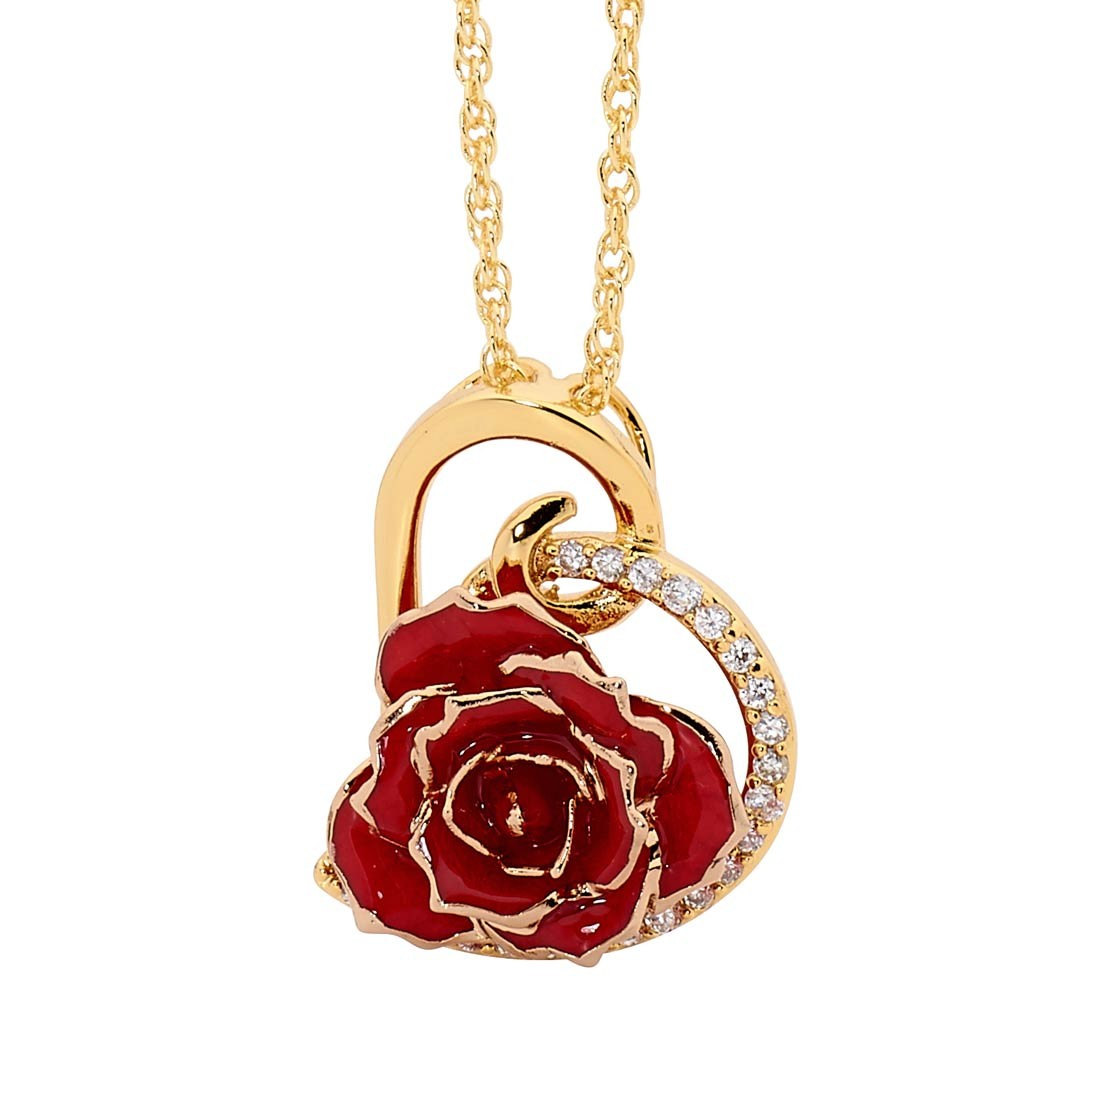 Rose Red Glazed Rose Heart Pendant 24k Gold